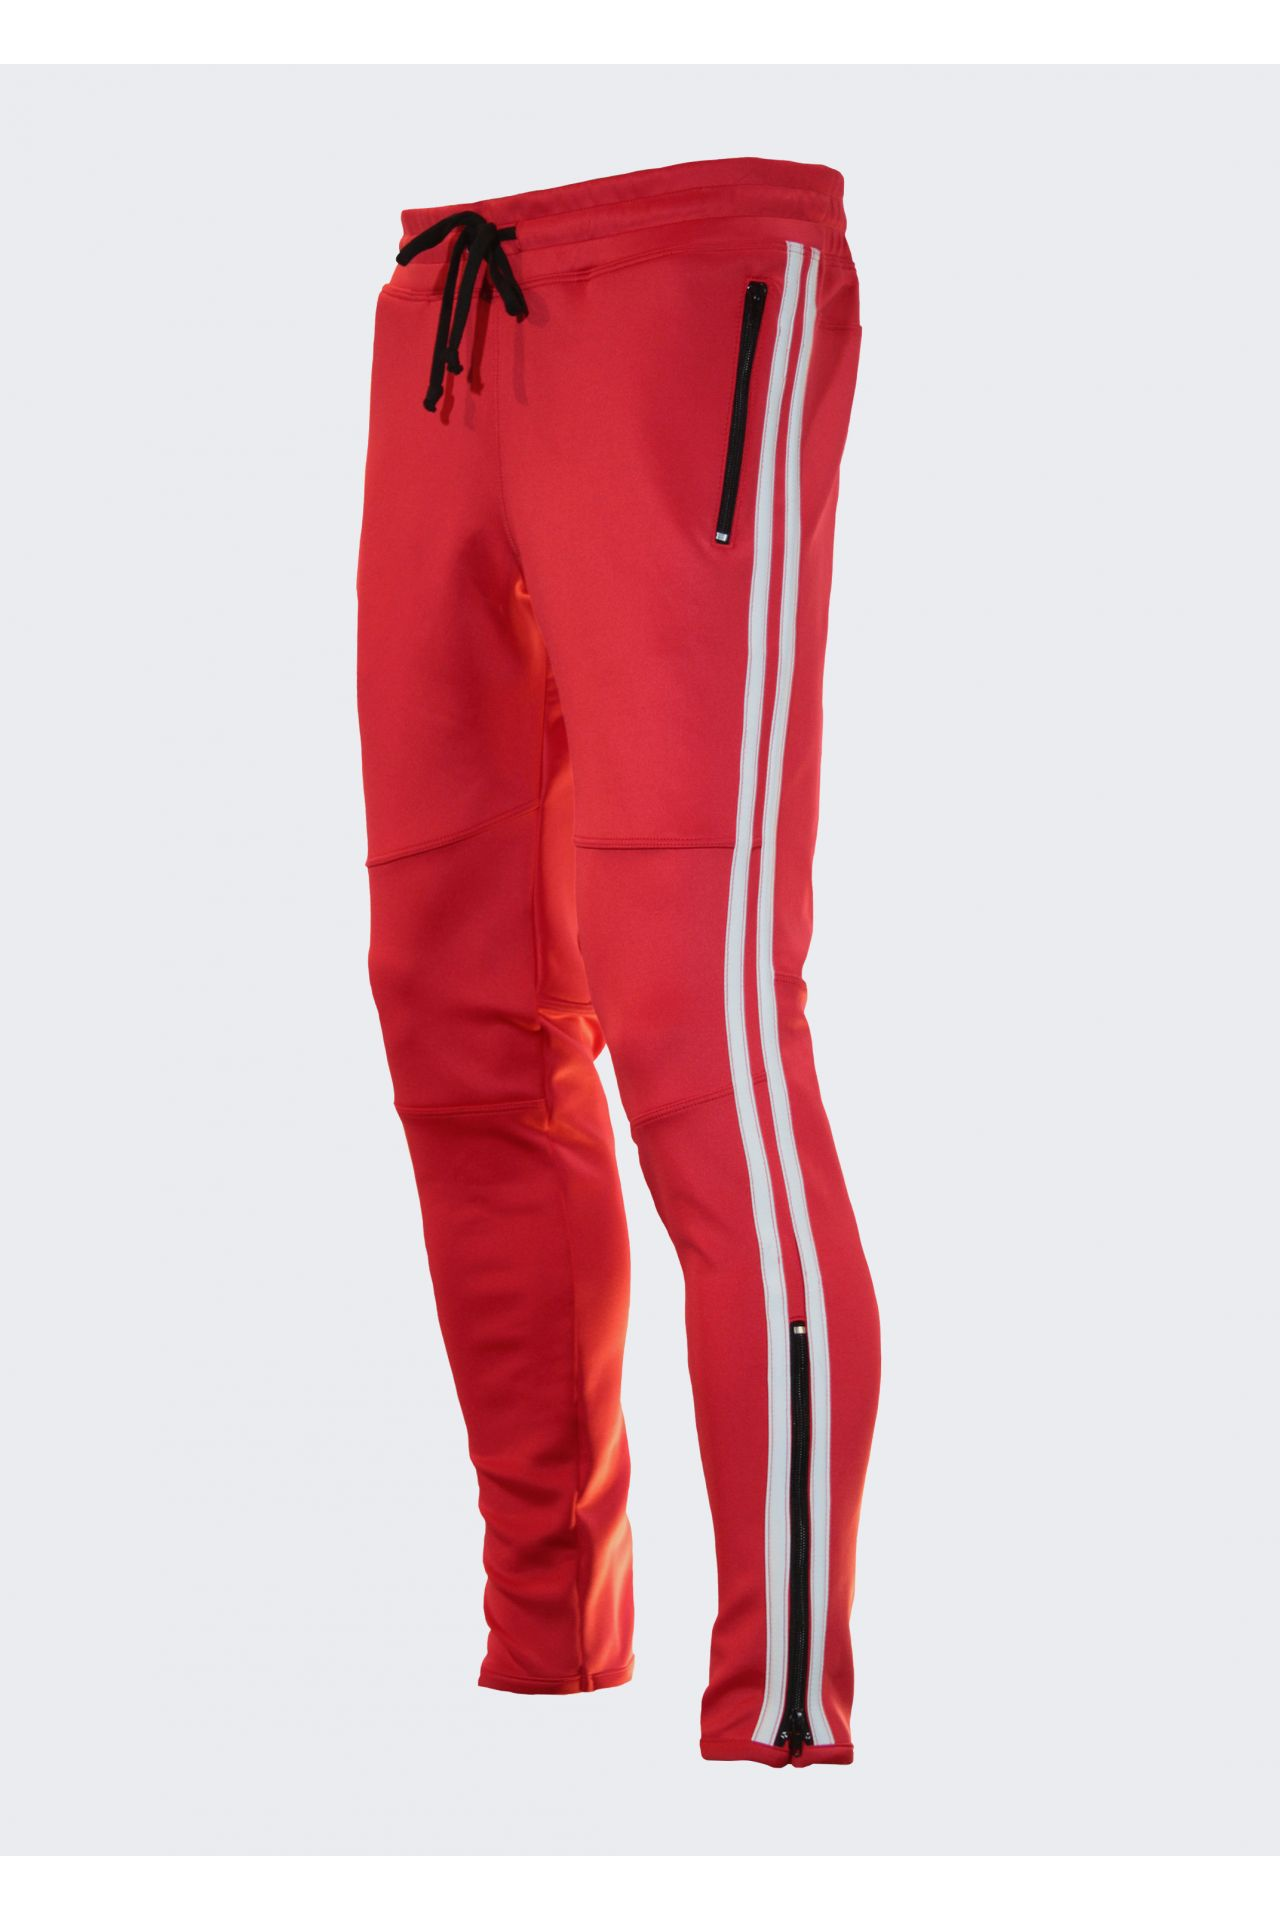 JOGGER IN RED WITH WHITE STRIPE